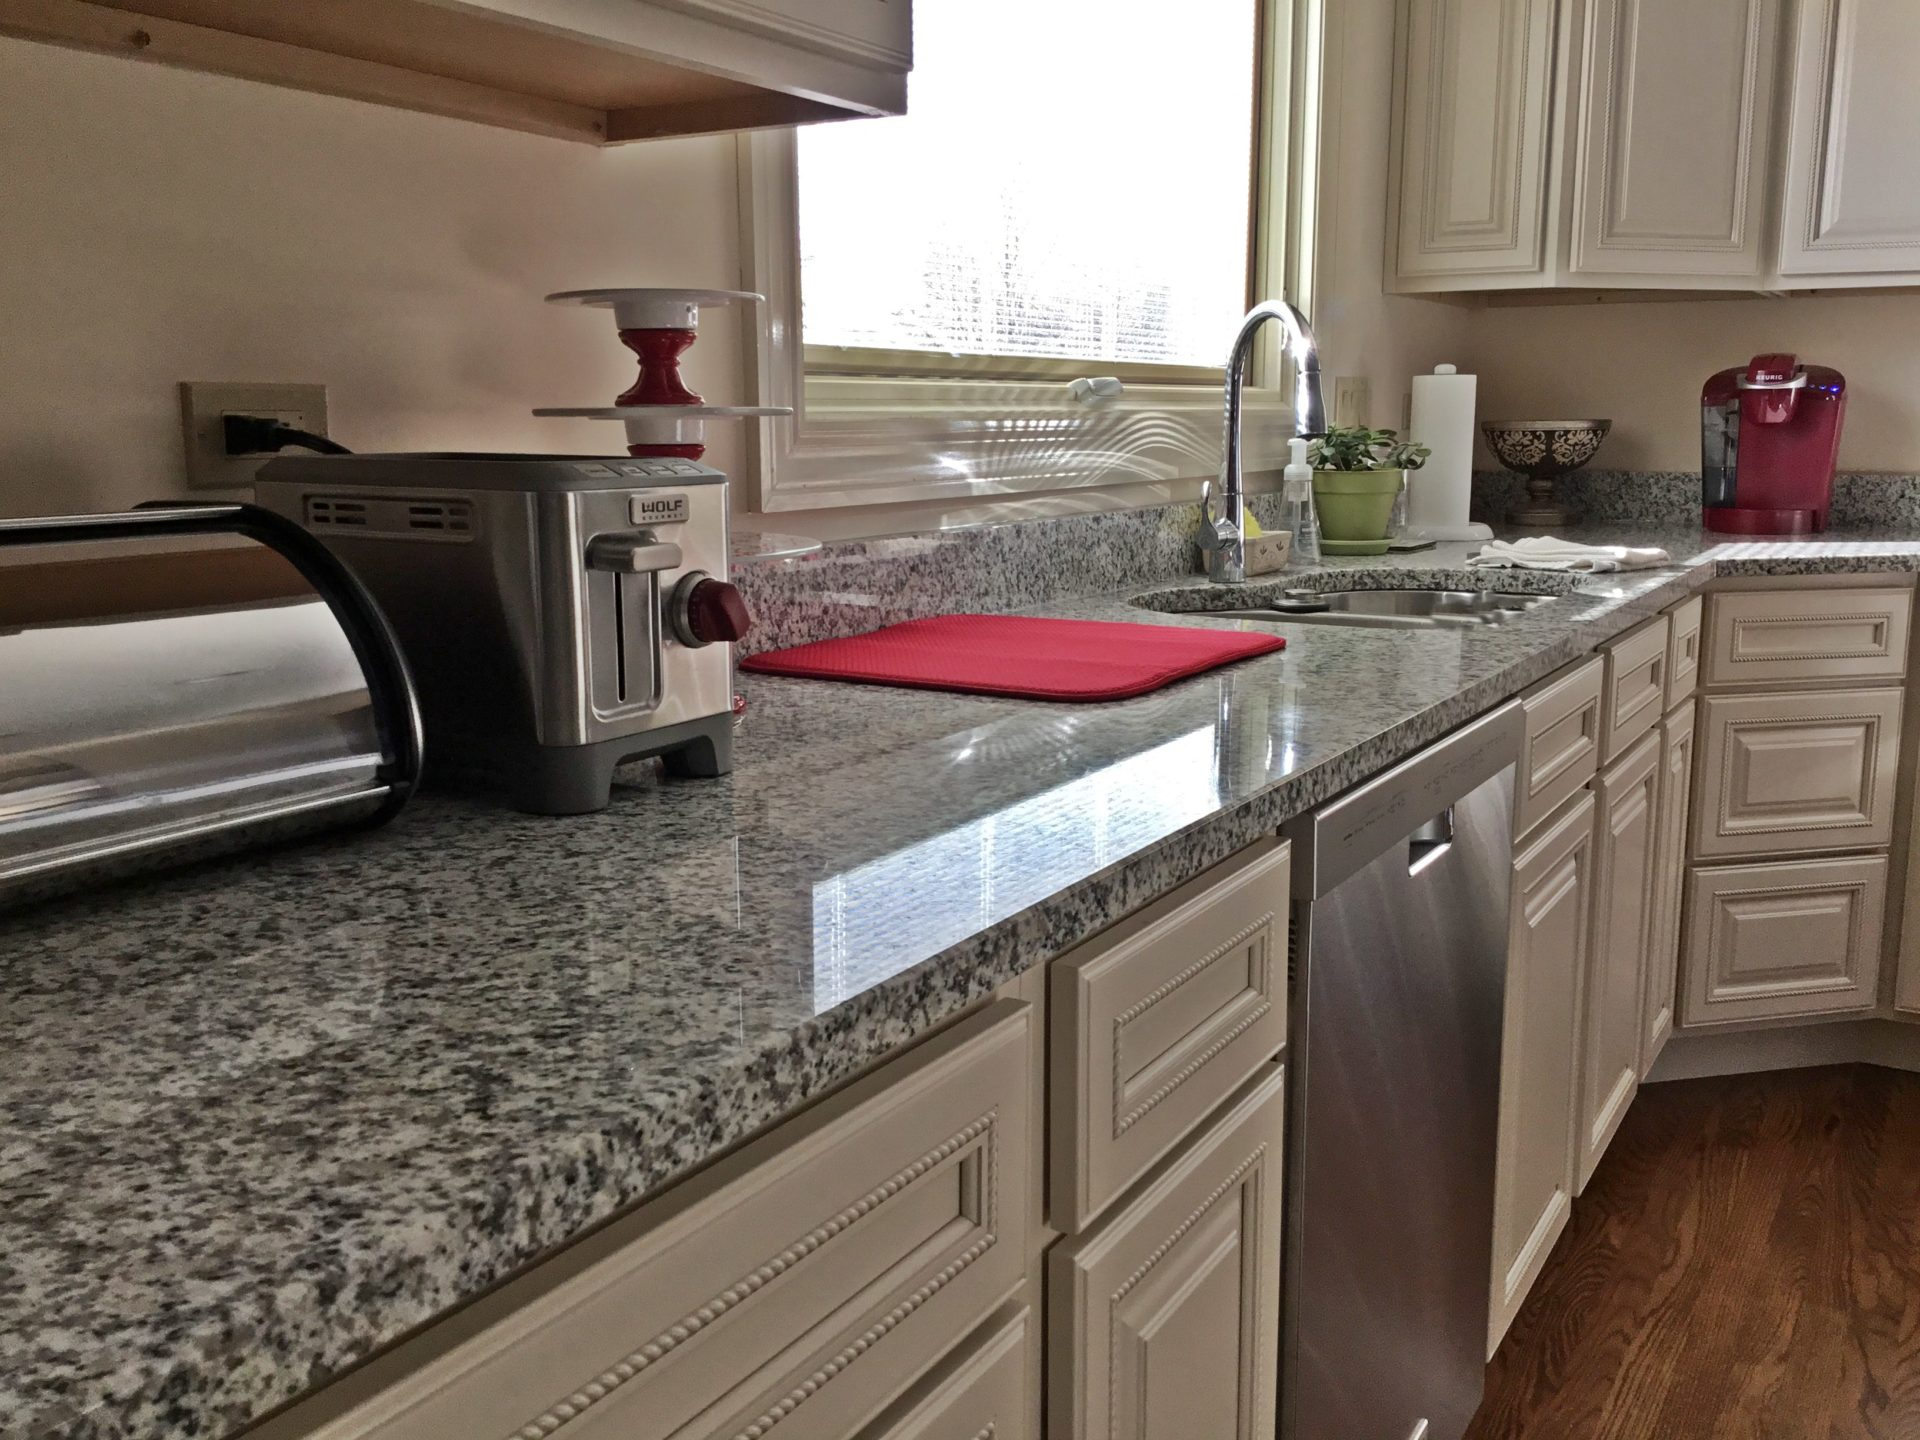 Space and Style - J&J Construction Kitchen Remodeling